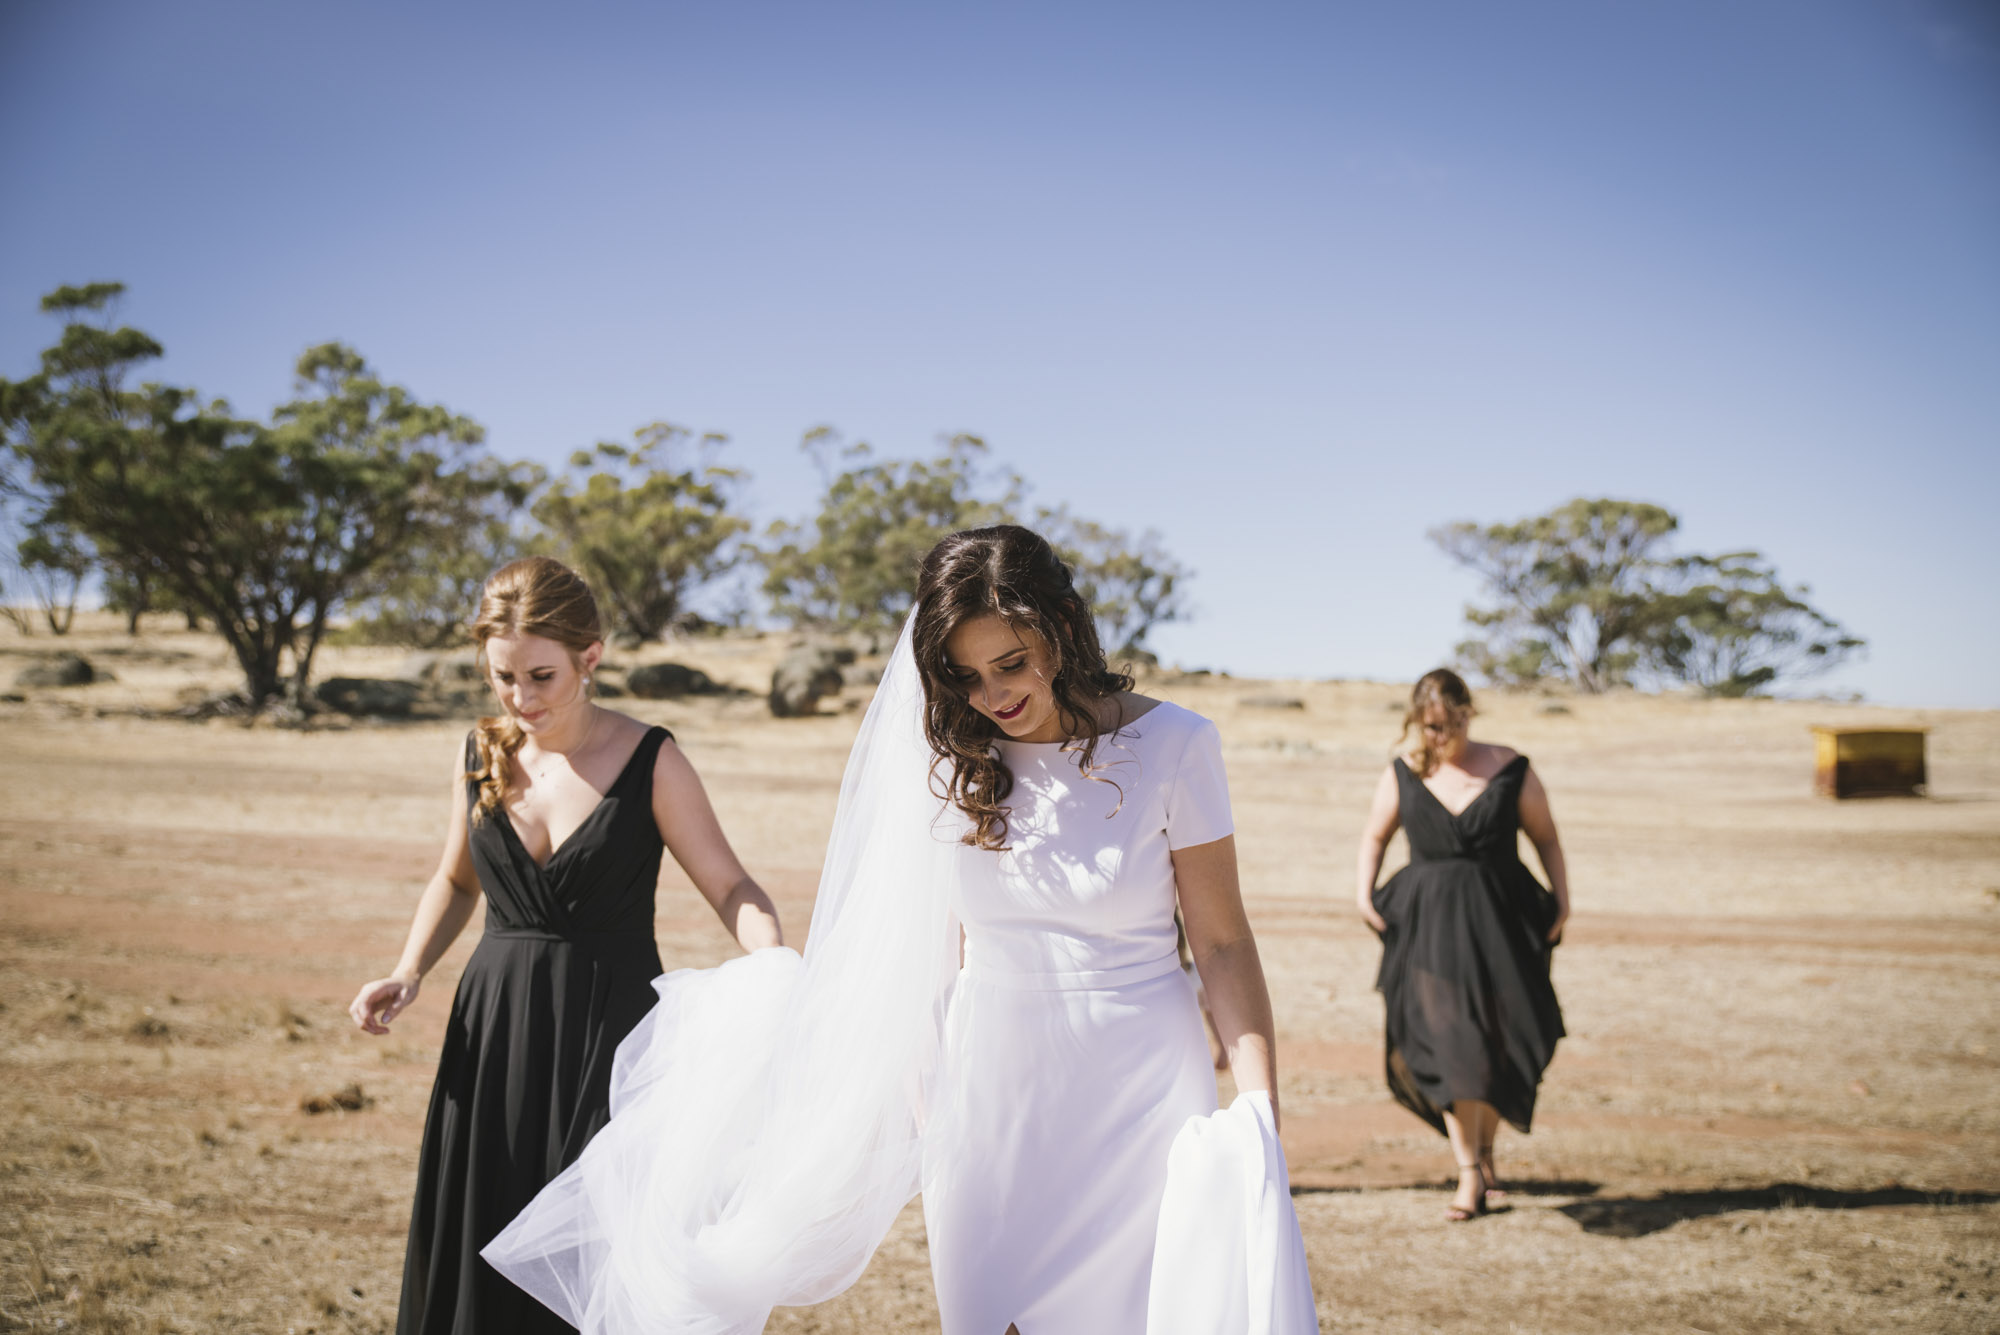 Angie-Roe-Photography-Wedding-Perth-Northam-Wheatbelt-Country-Rural (87).jpg